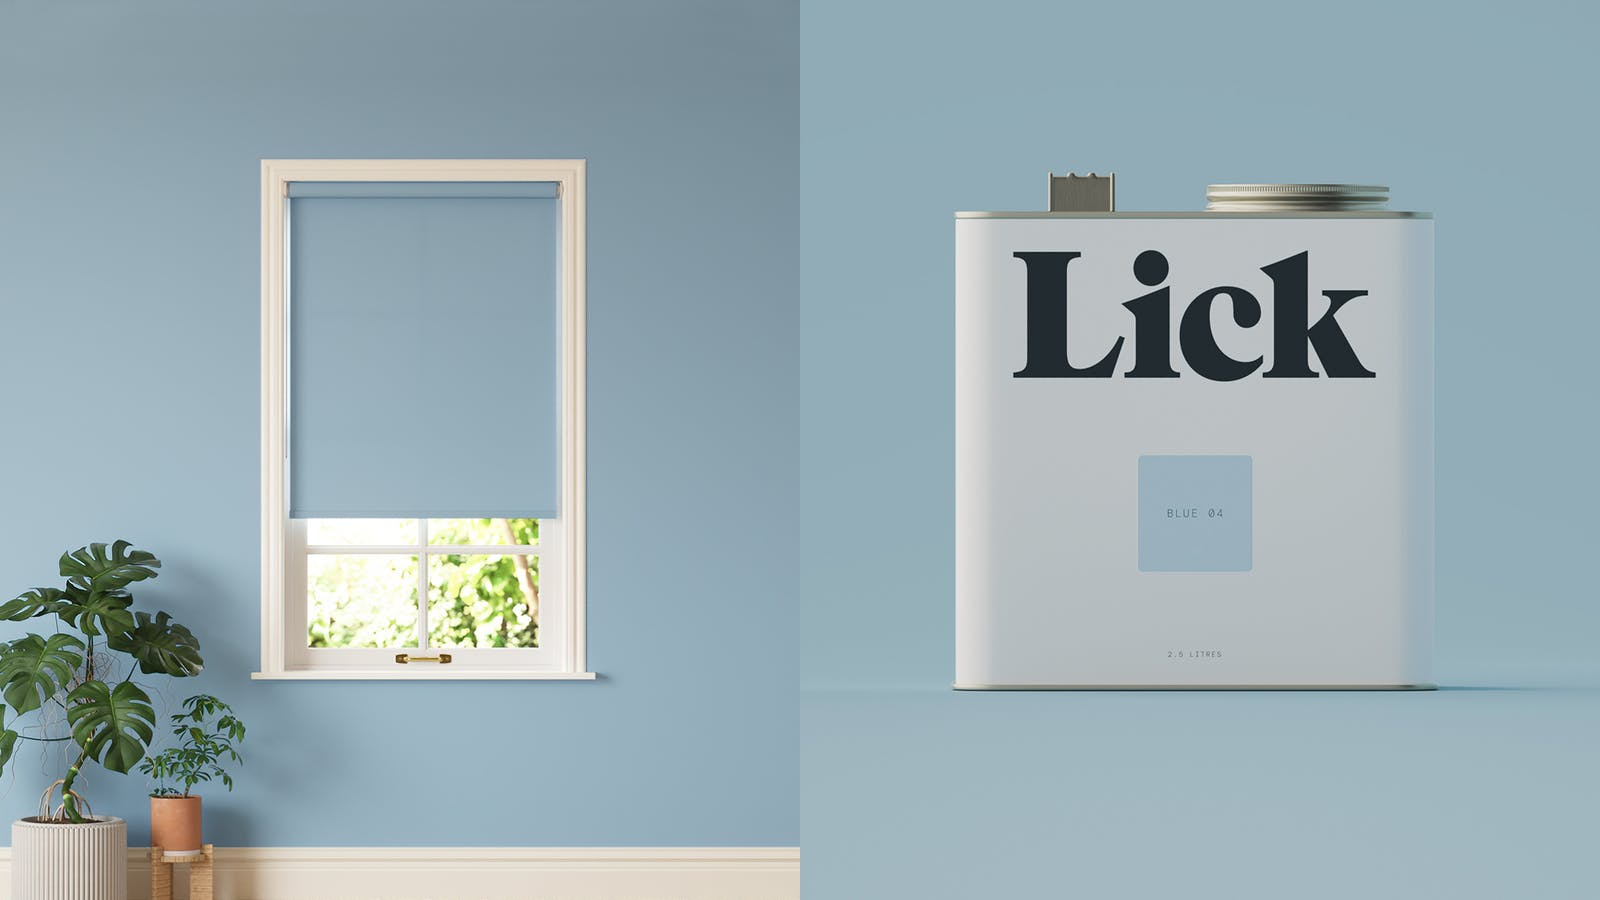 Lick roller blinds in Blue 04 against Lick Blue 04 paint tin